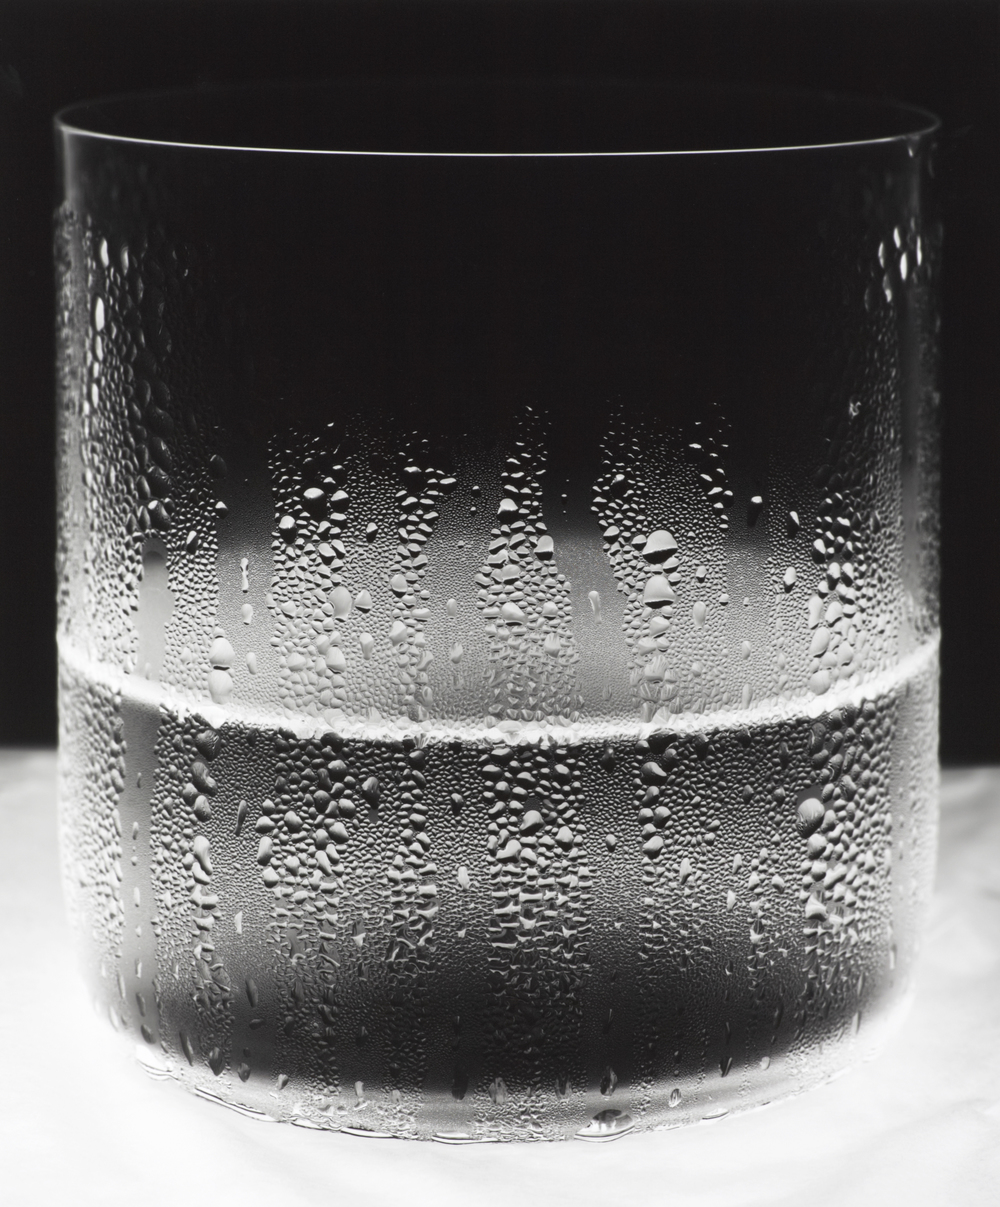 Water Glass 1, 2011